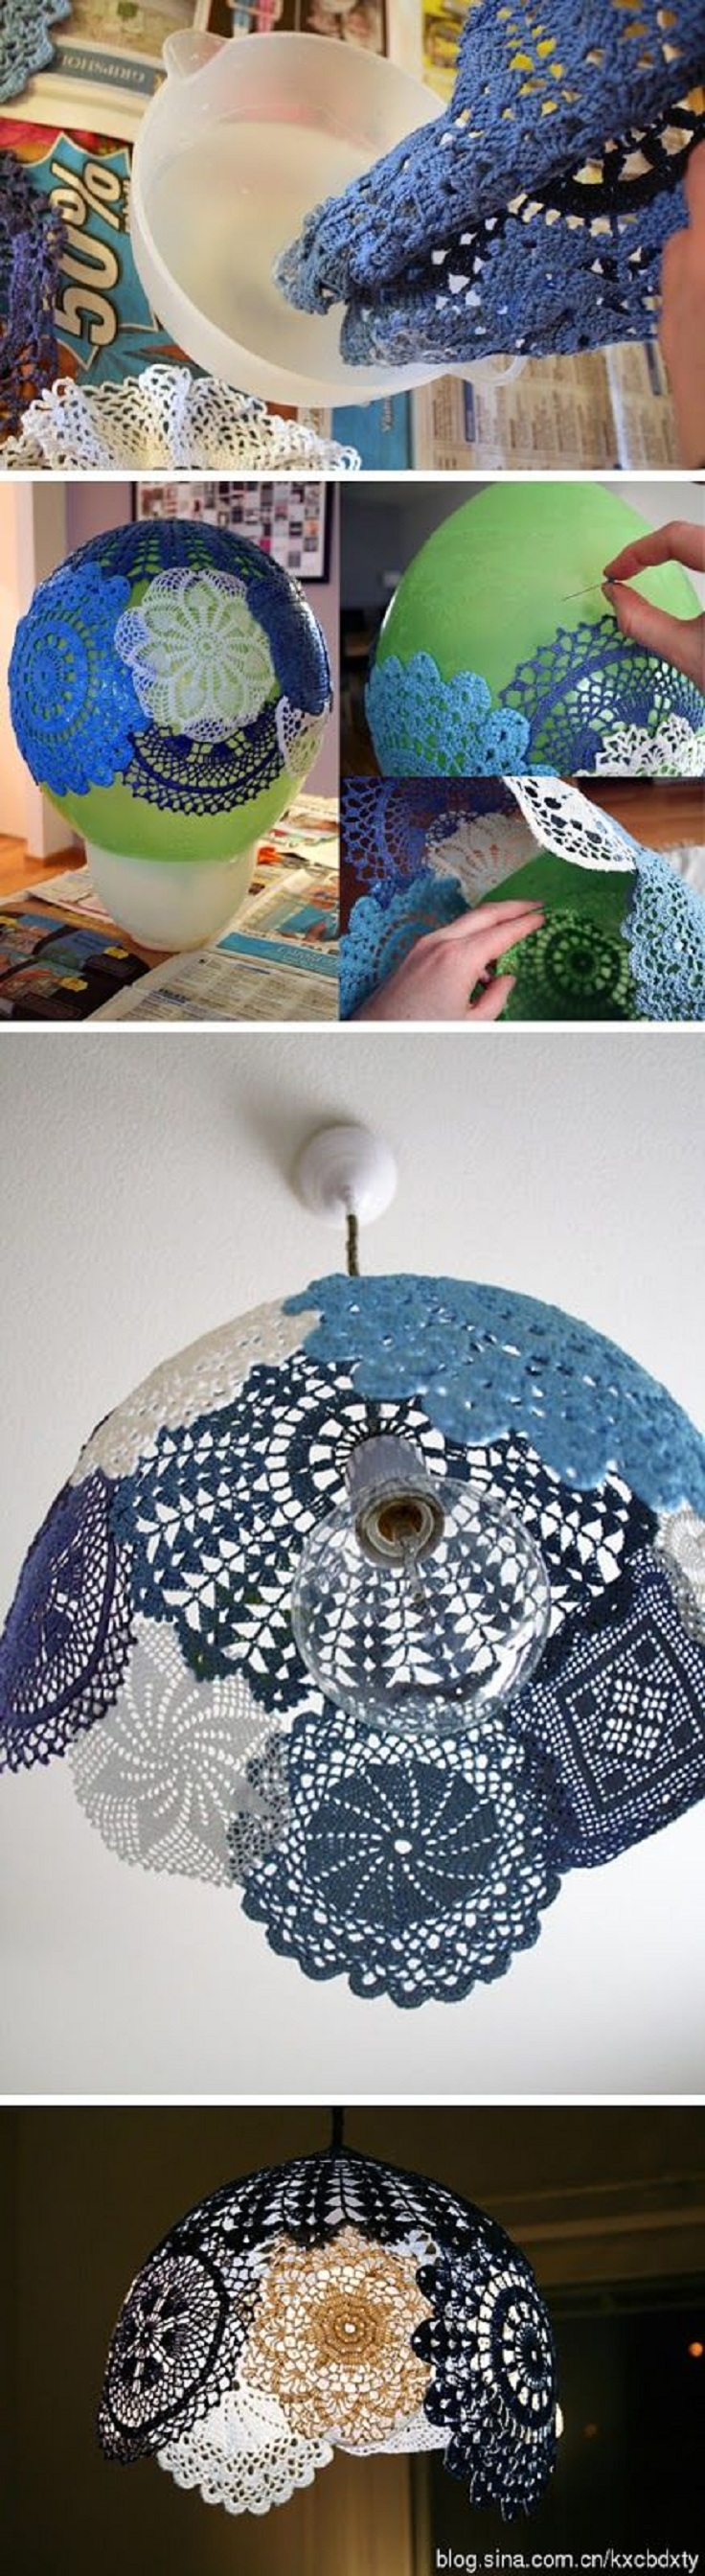 10 simply breathtaking diy home decor projects that will magically 10 simply breathtaking diy home decor projects that will magically beautify your interior homesthetics 7 solutioingenieria Images